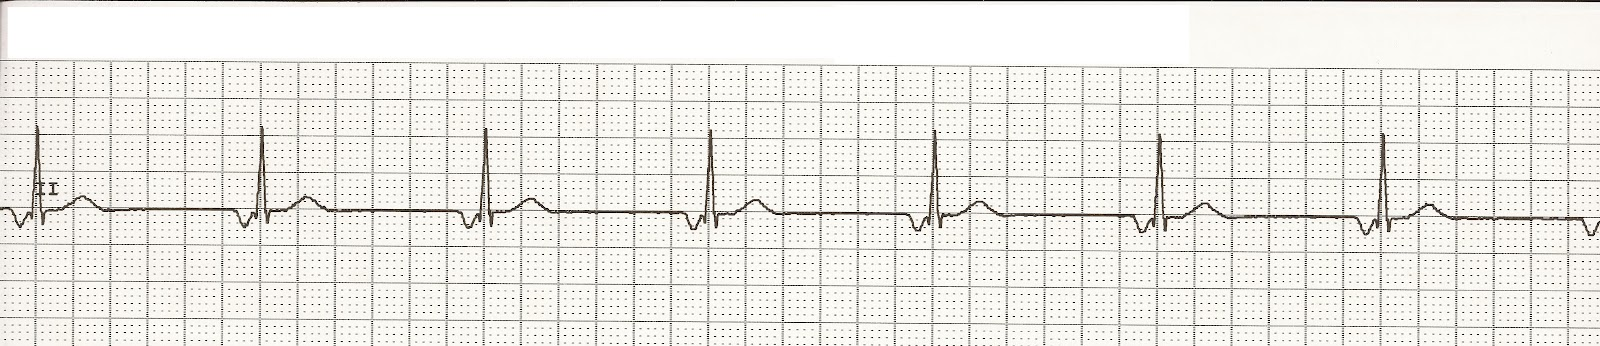 EKG Rhythm Strips 28  Junctional RhythmsAccelerated Junctional Rhythm